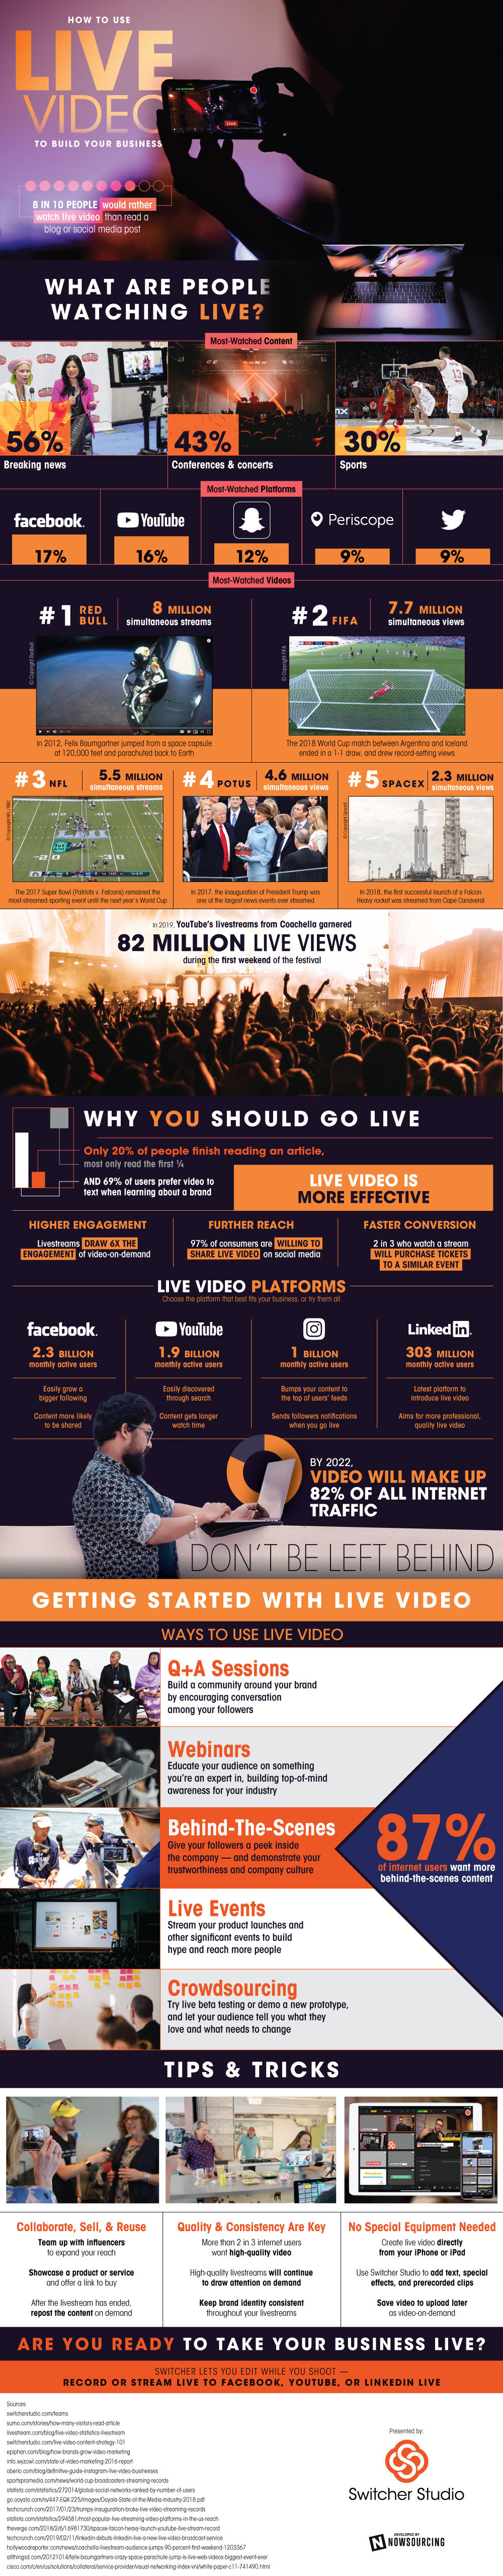 How To Use Live Video